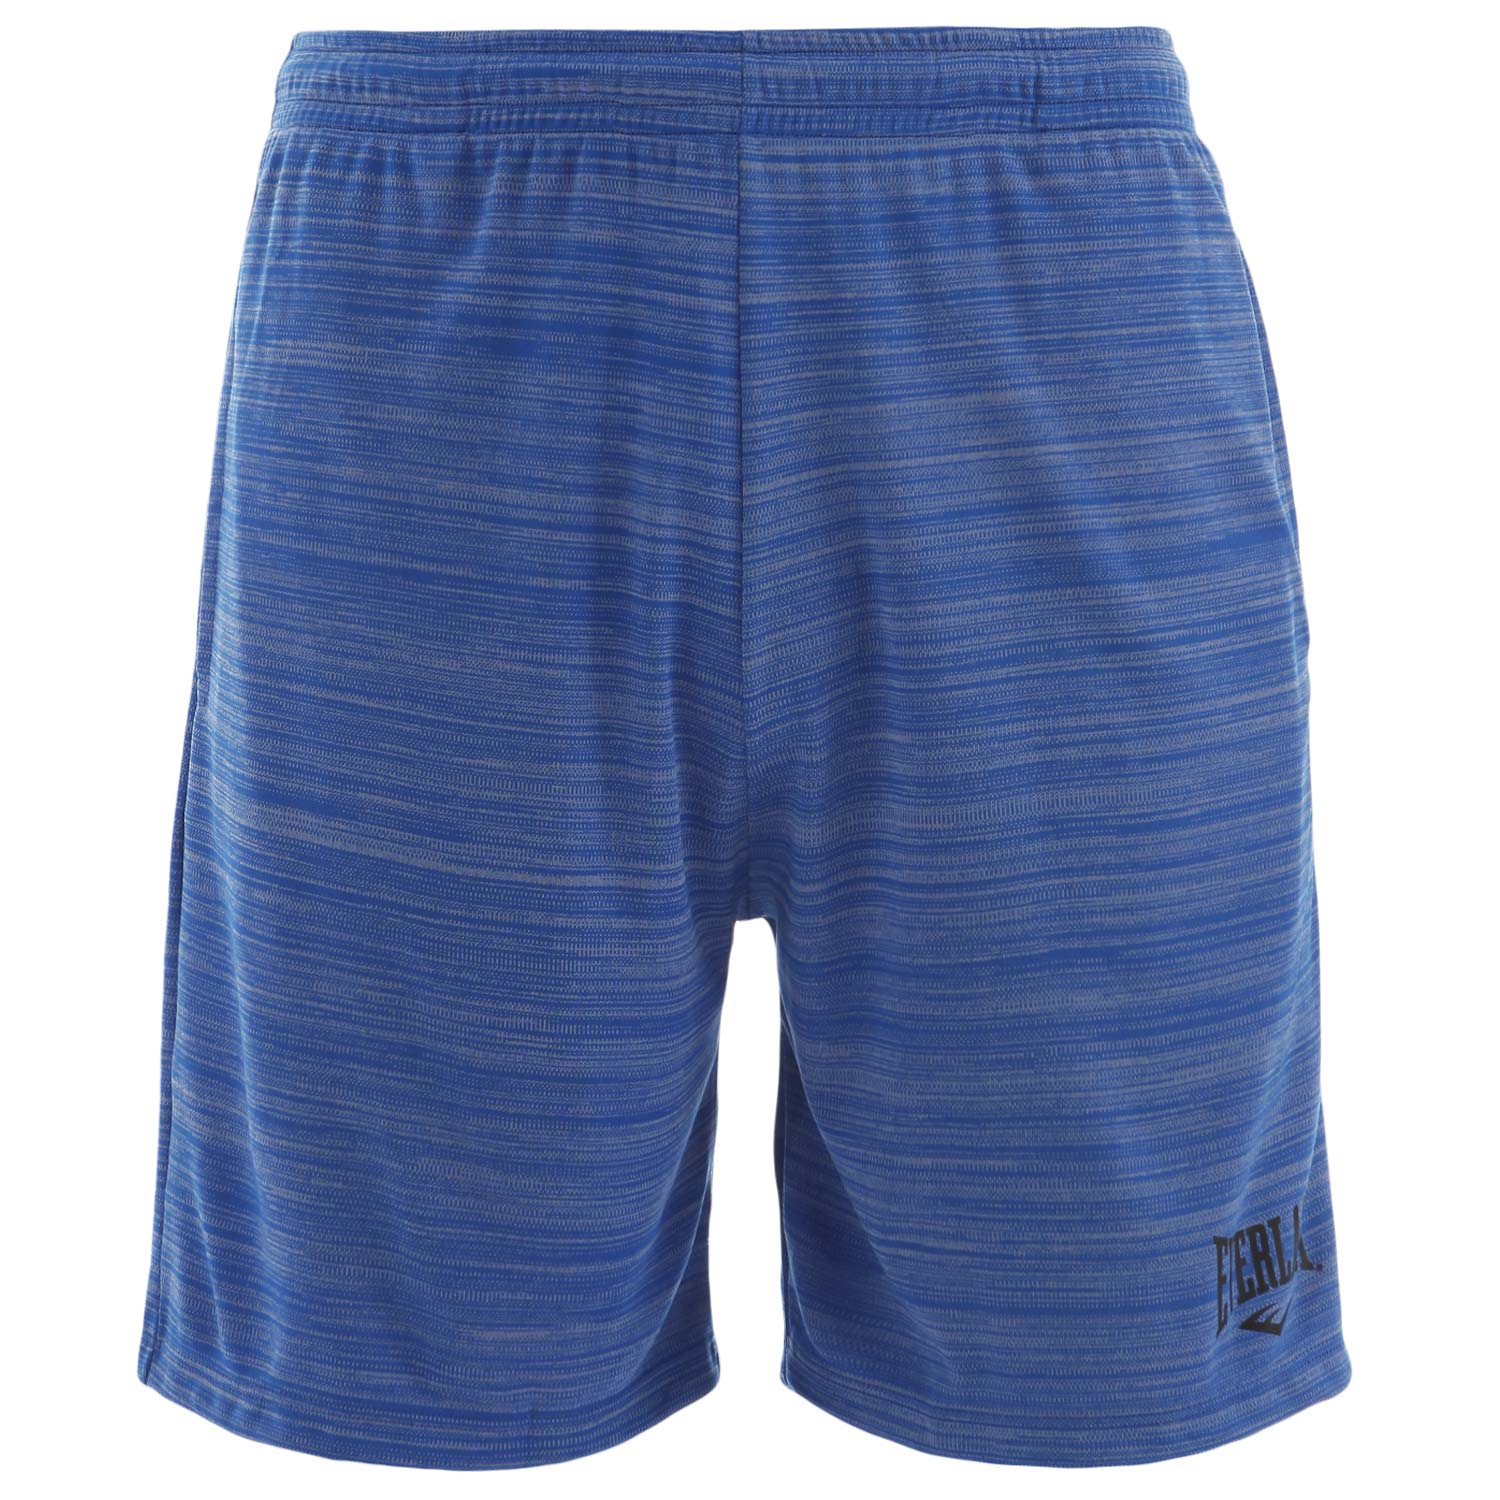 Short Everlast Masculino Azul Royal